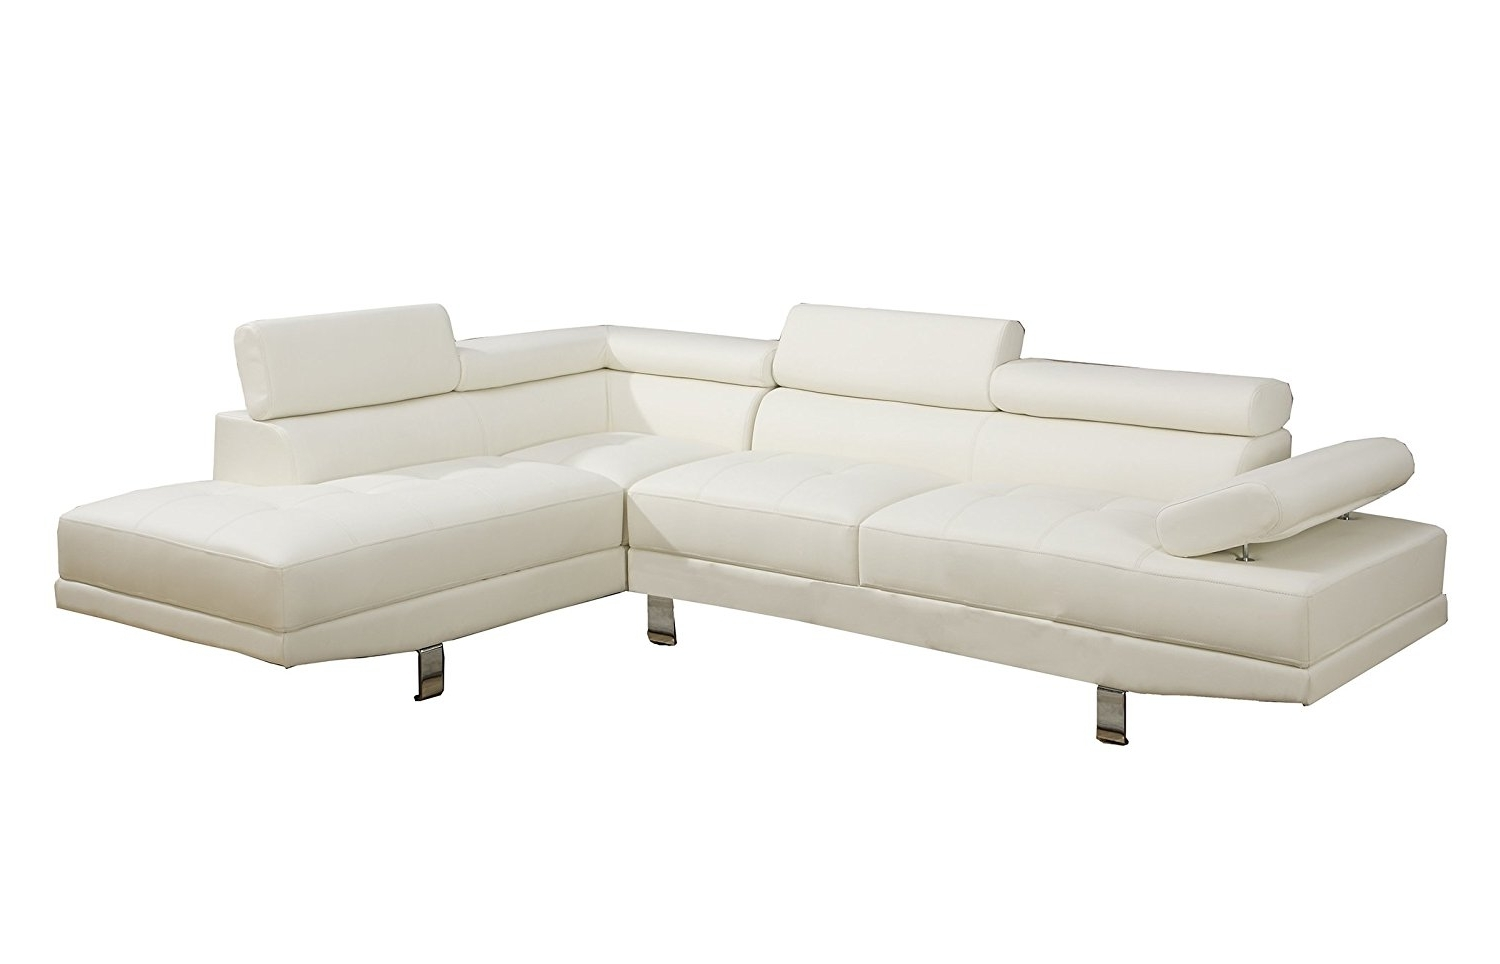 Amazon: Poundex 2 Pieces Faux Leather Sectional Right Chaise Inside Popular Chaise Sofas (View 8 of 15)